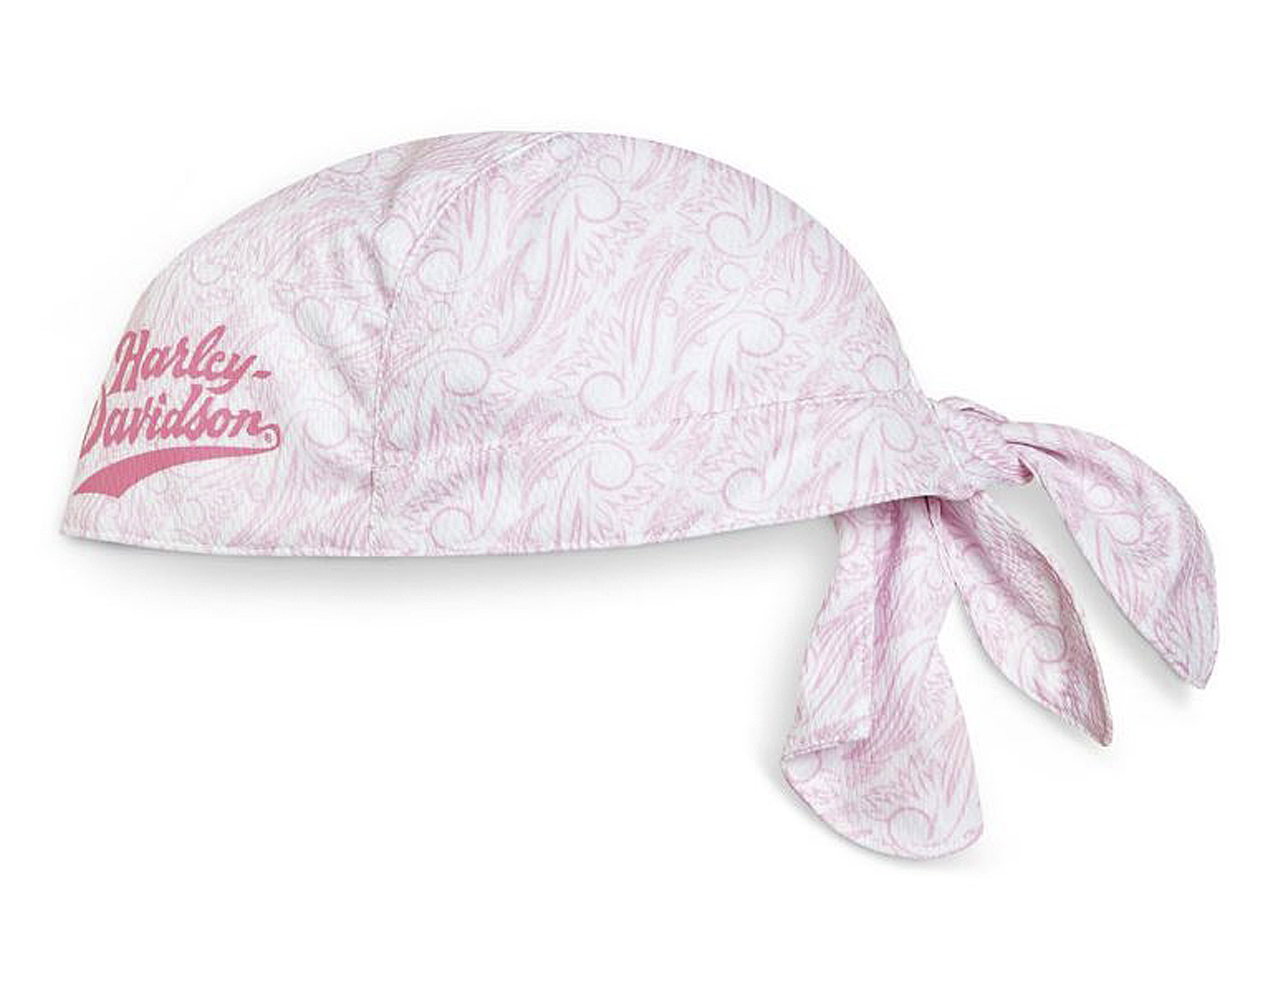 Harley-Davidson® Women's Pink Label Performance Head Wrap   One Size Fits Most